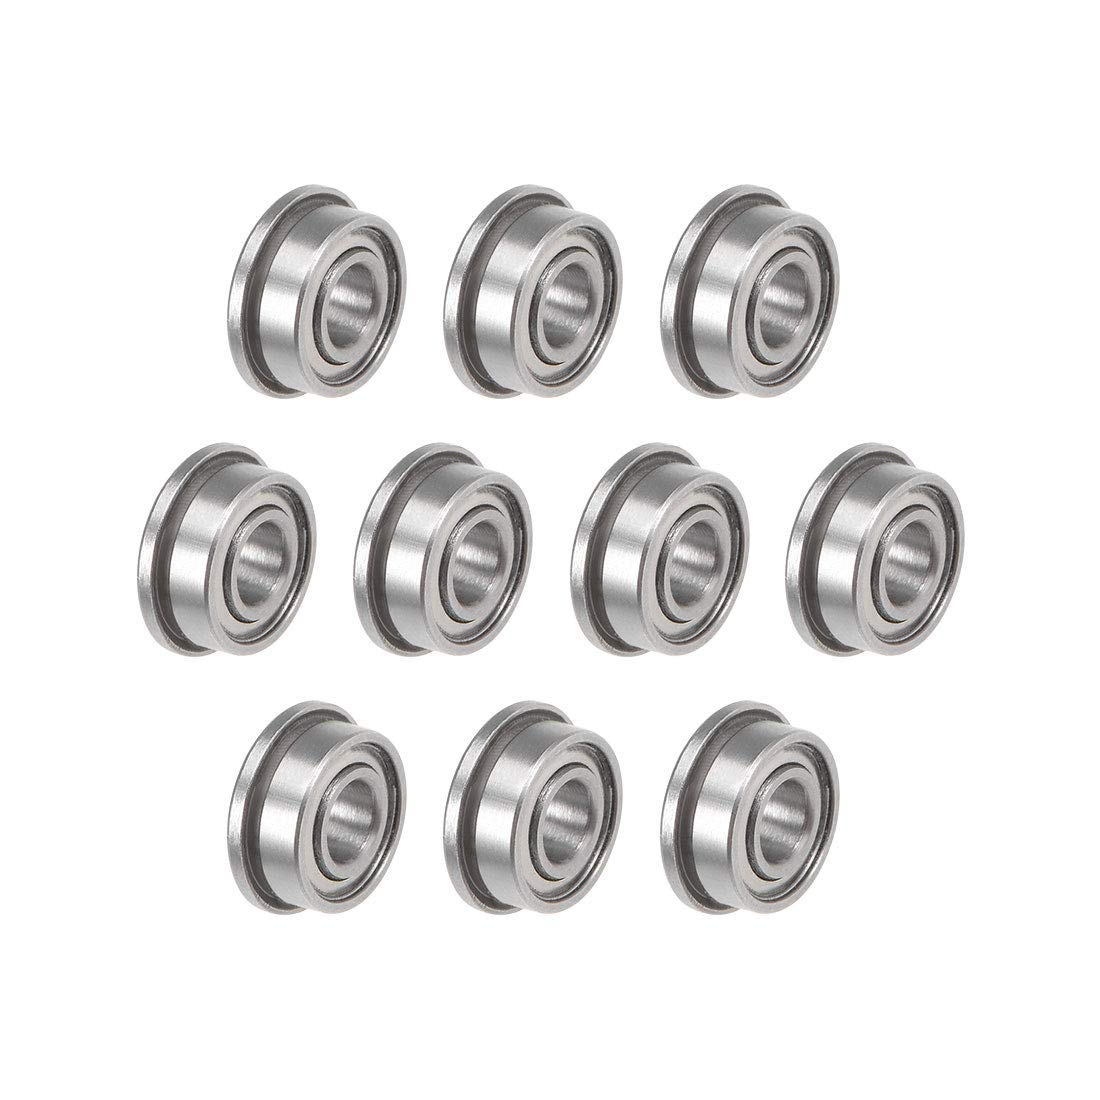 uxcell F683ZZ Flanged Ball Attention brand Bearing Shielded Steel Chrome 3x7x3mm SEAL limited product